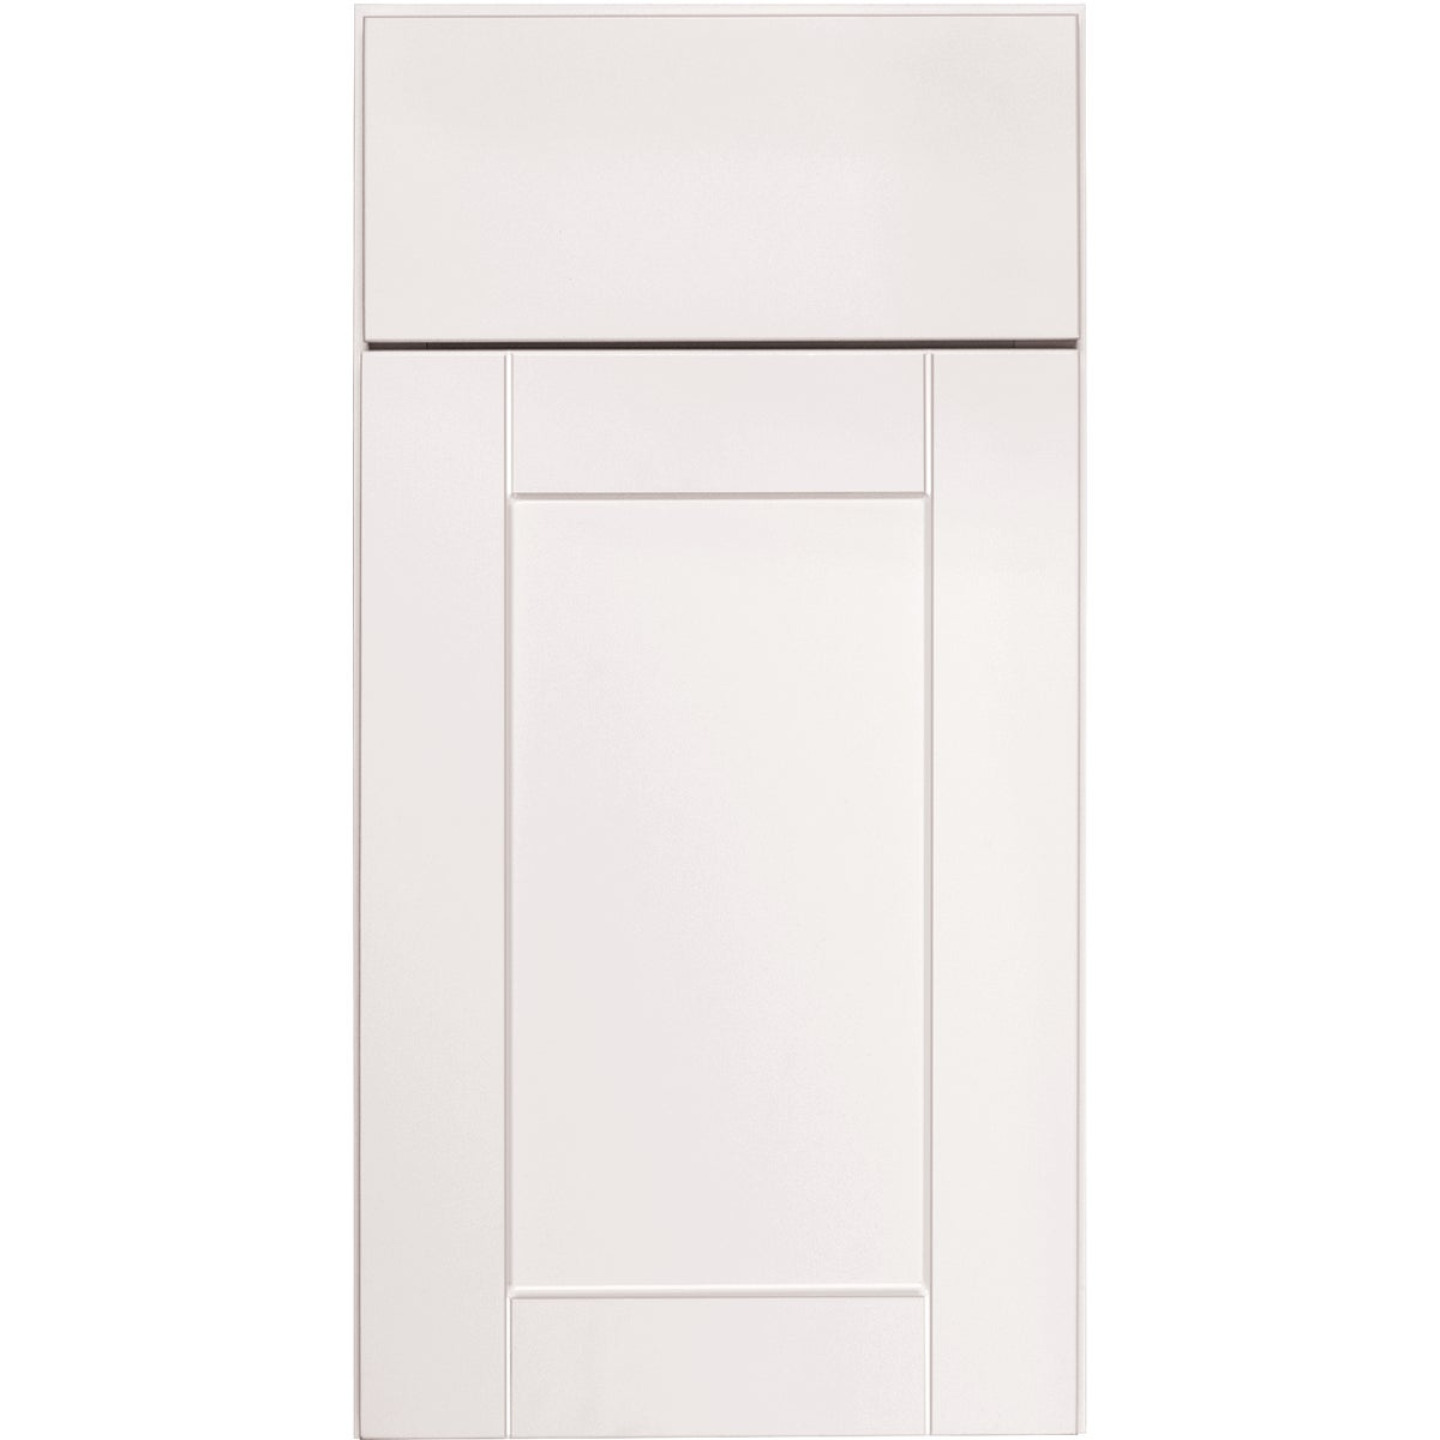 Continental Cabinets Andover Shaker 30 In. W x 34-1/2 In. H x 24 In. D White Thermofoil Sink Base Kitchen Cabinet Image 3